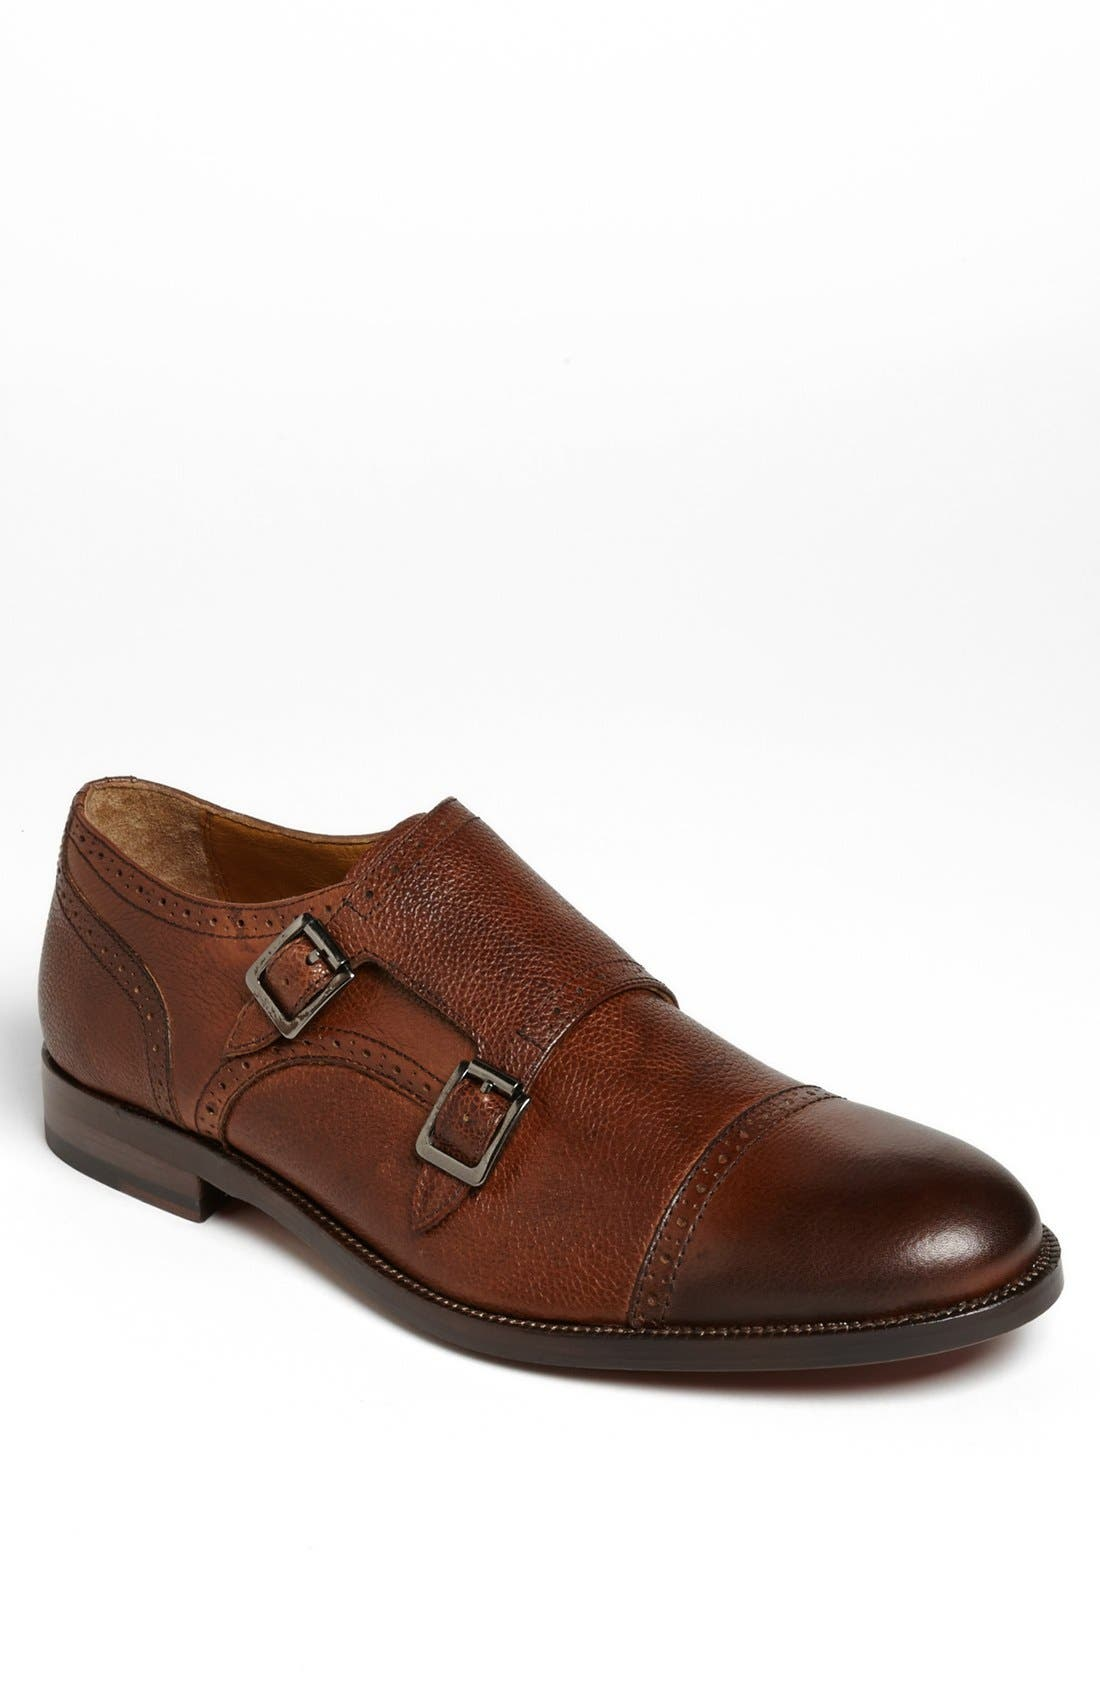 Alternate Image 1 Selected - Johnston & Murphy 'Clayton' Double Monk Slip-On (Online Only)